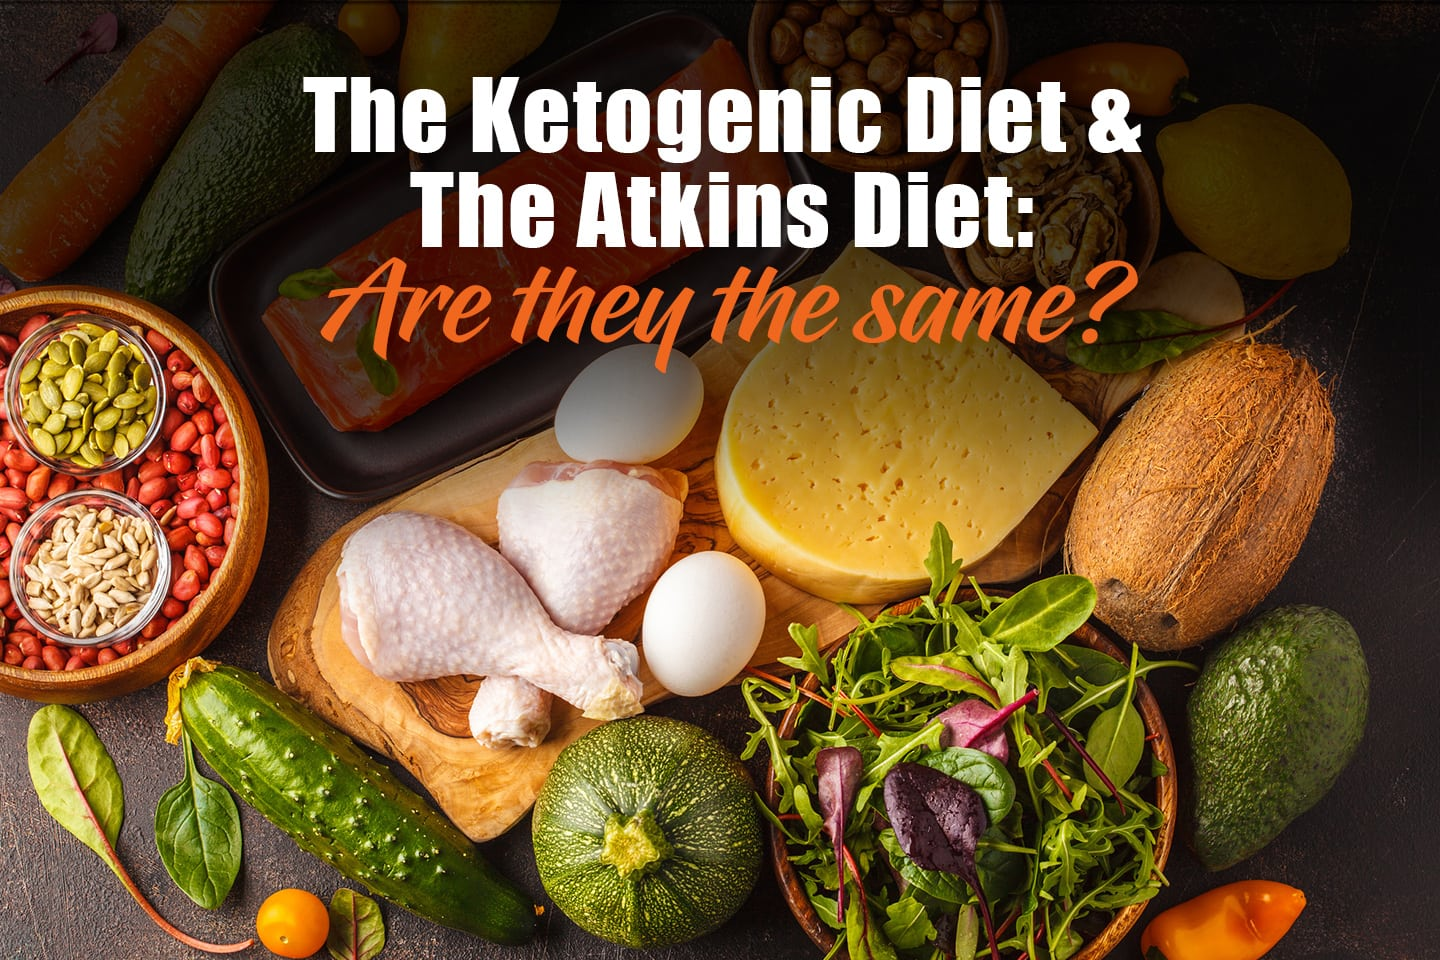 The Ketogenic Diet and The Atkins Diet